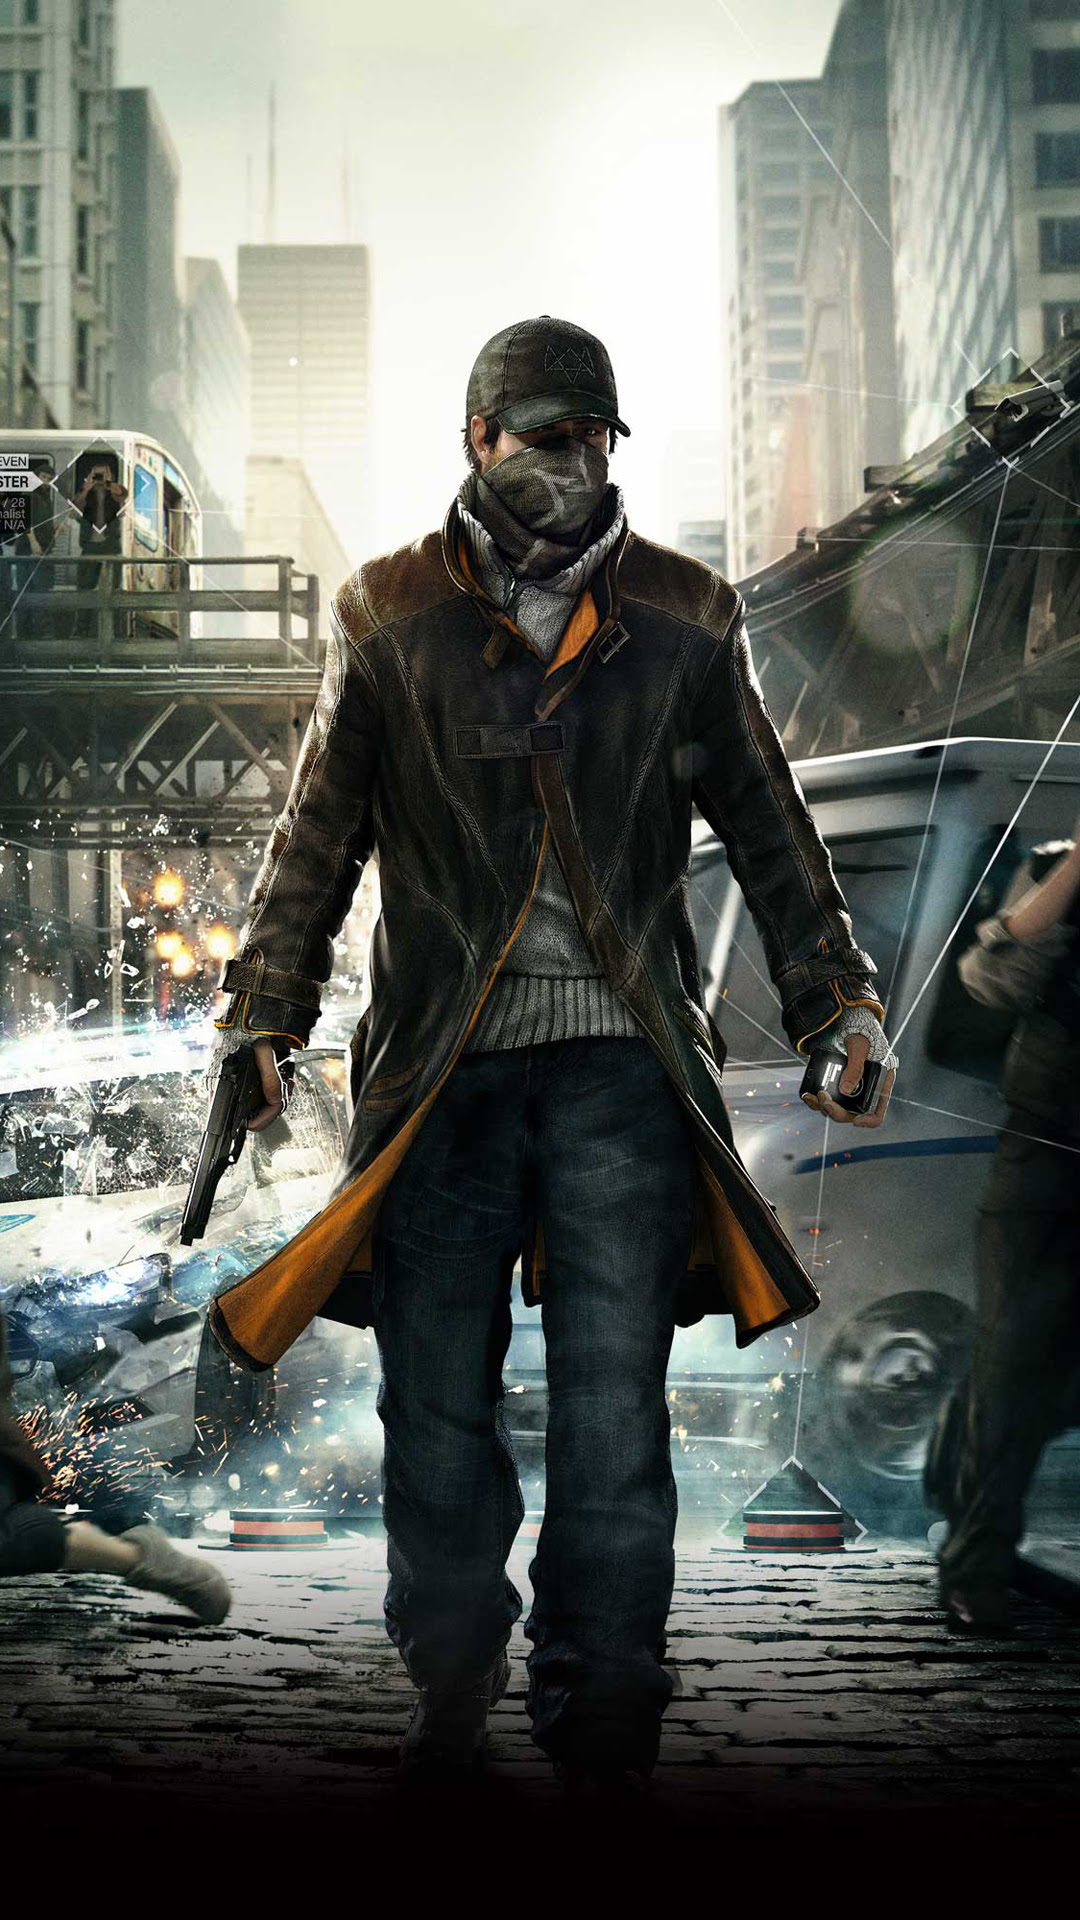 Aiden Pearce Best Htc One Wallpapers Free And Easy To Download Images, Photos, Reviews